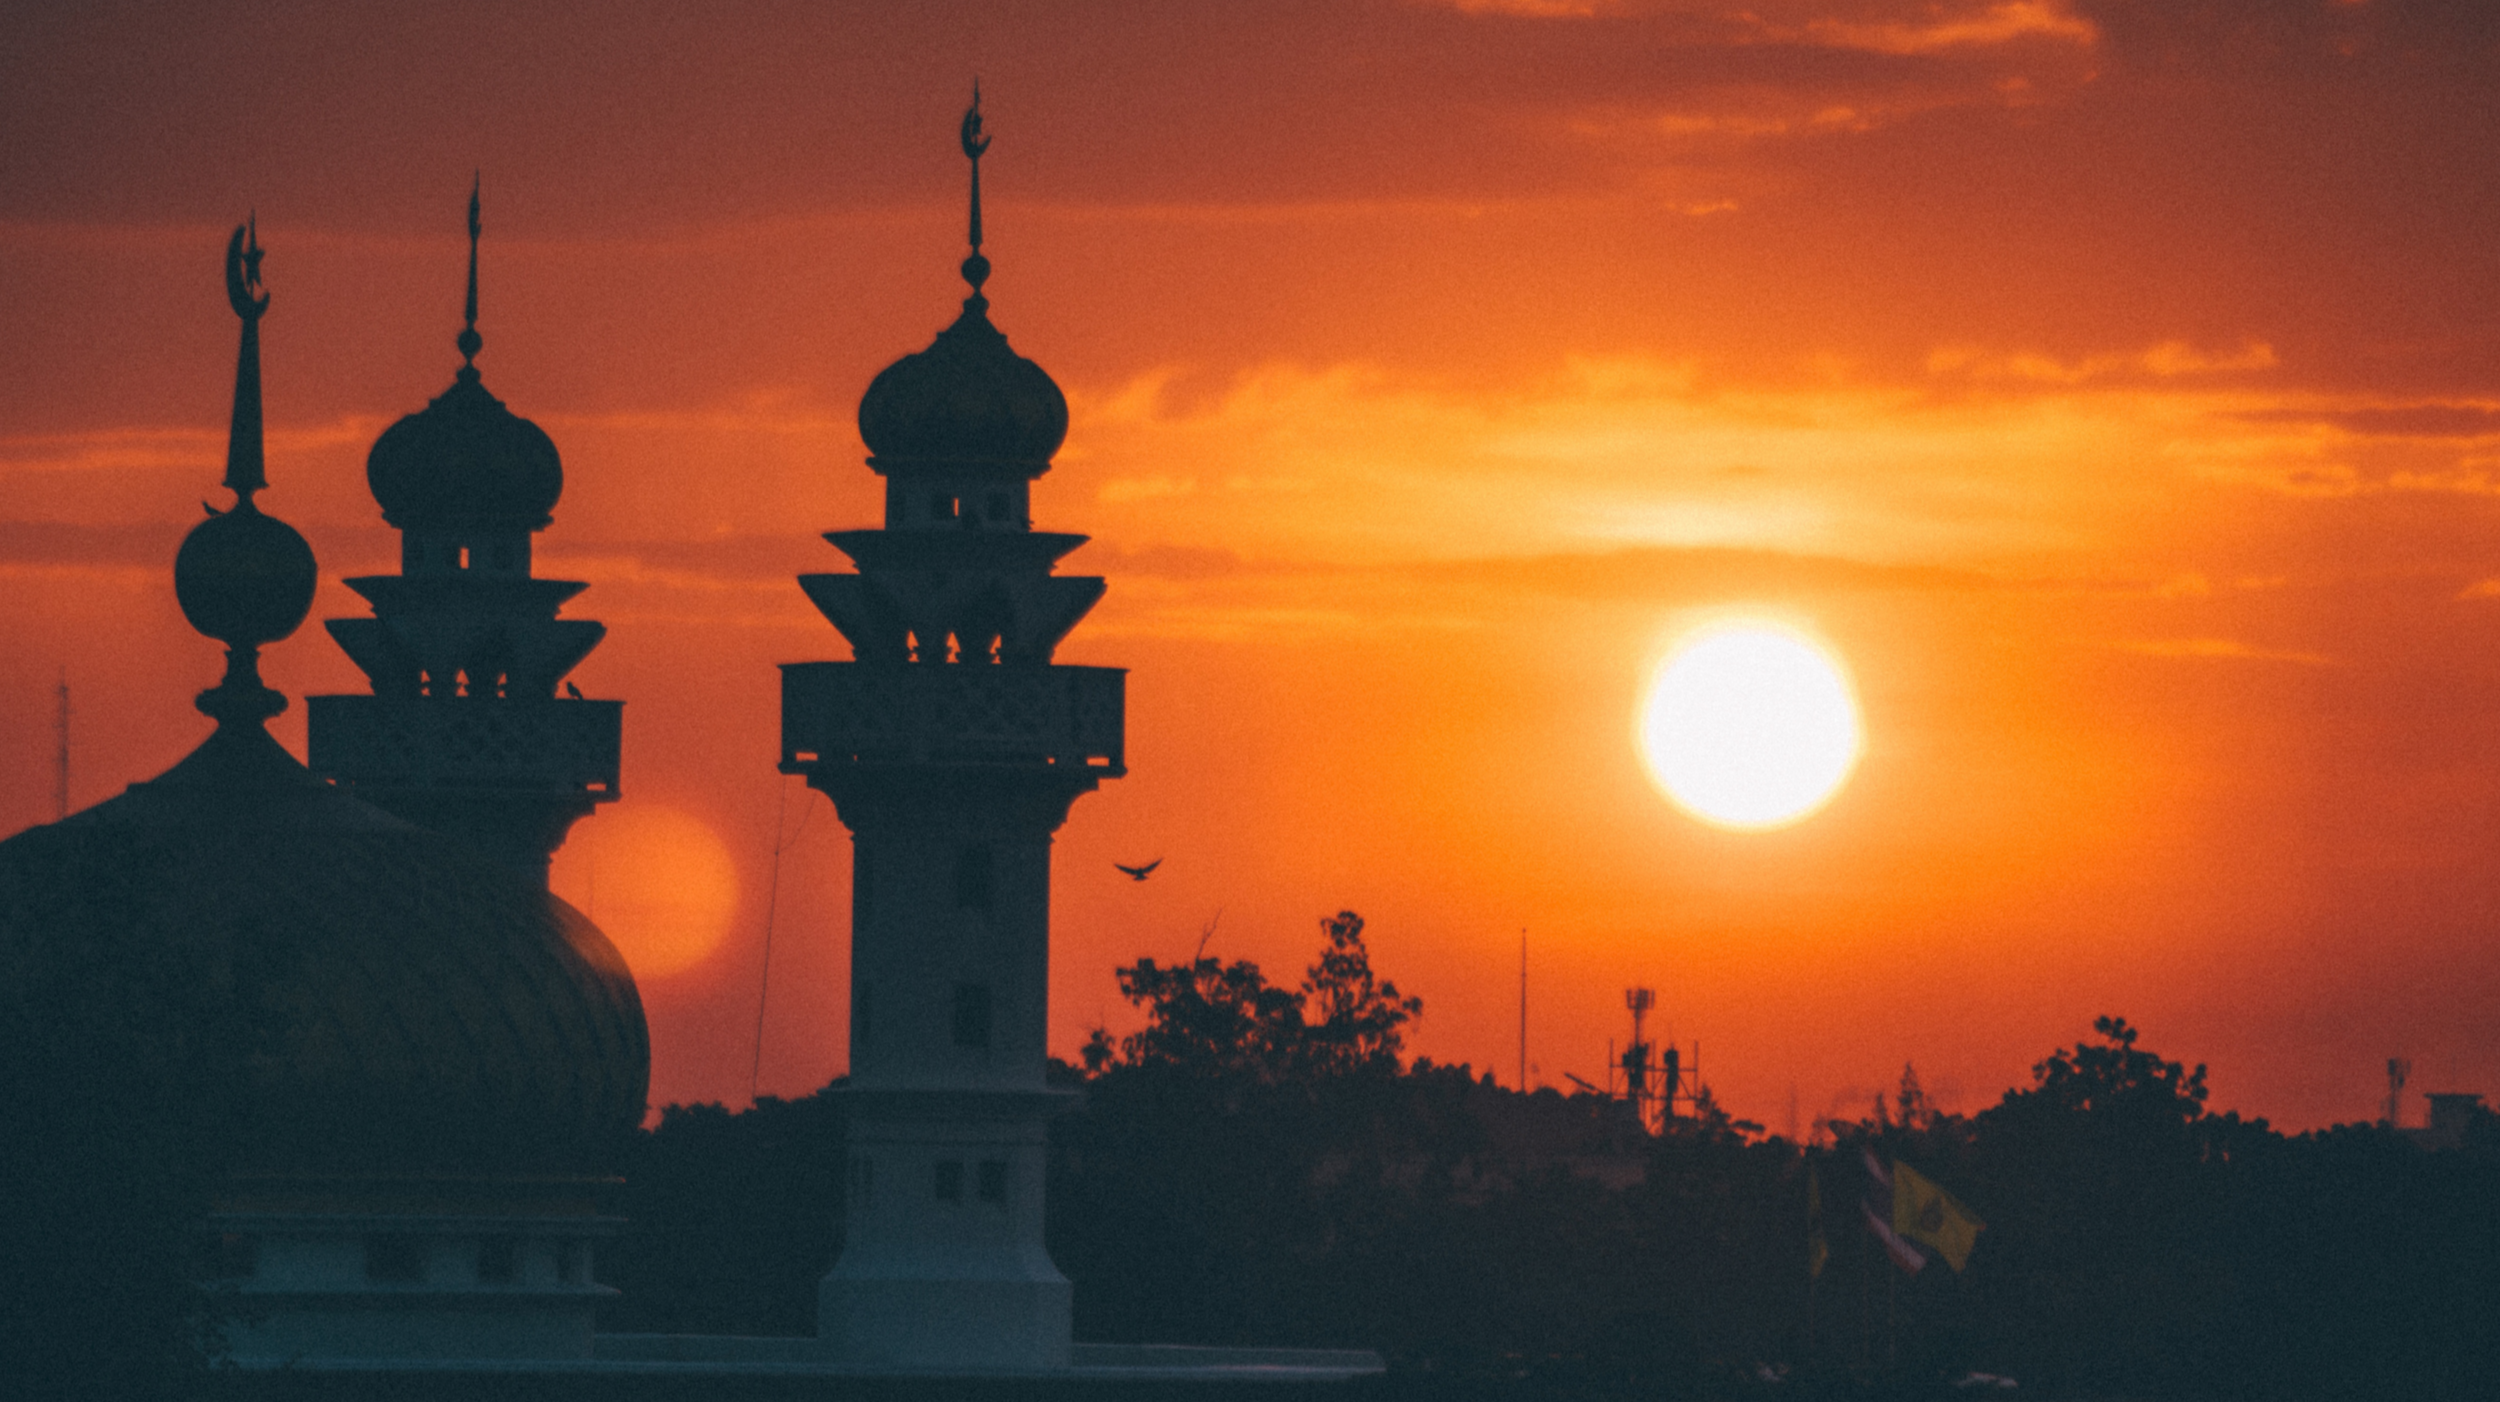 Sun setting over a mosque